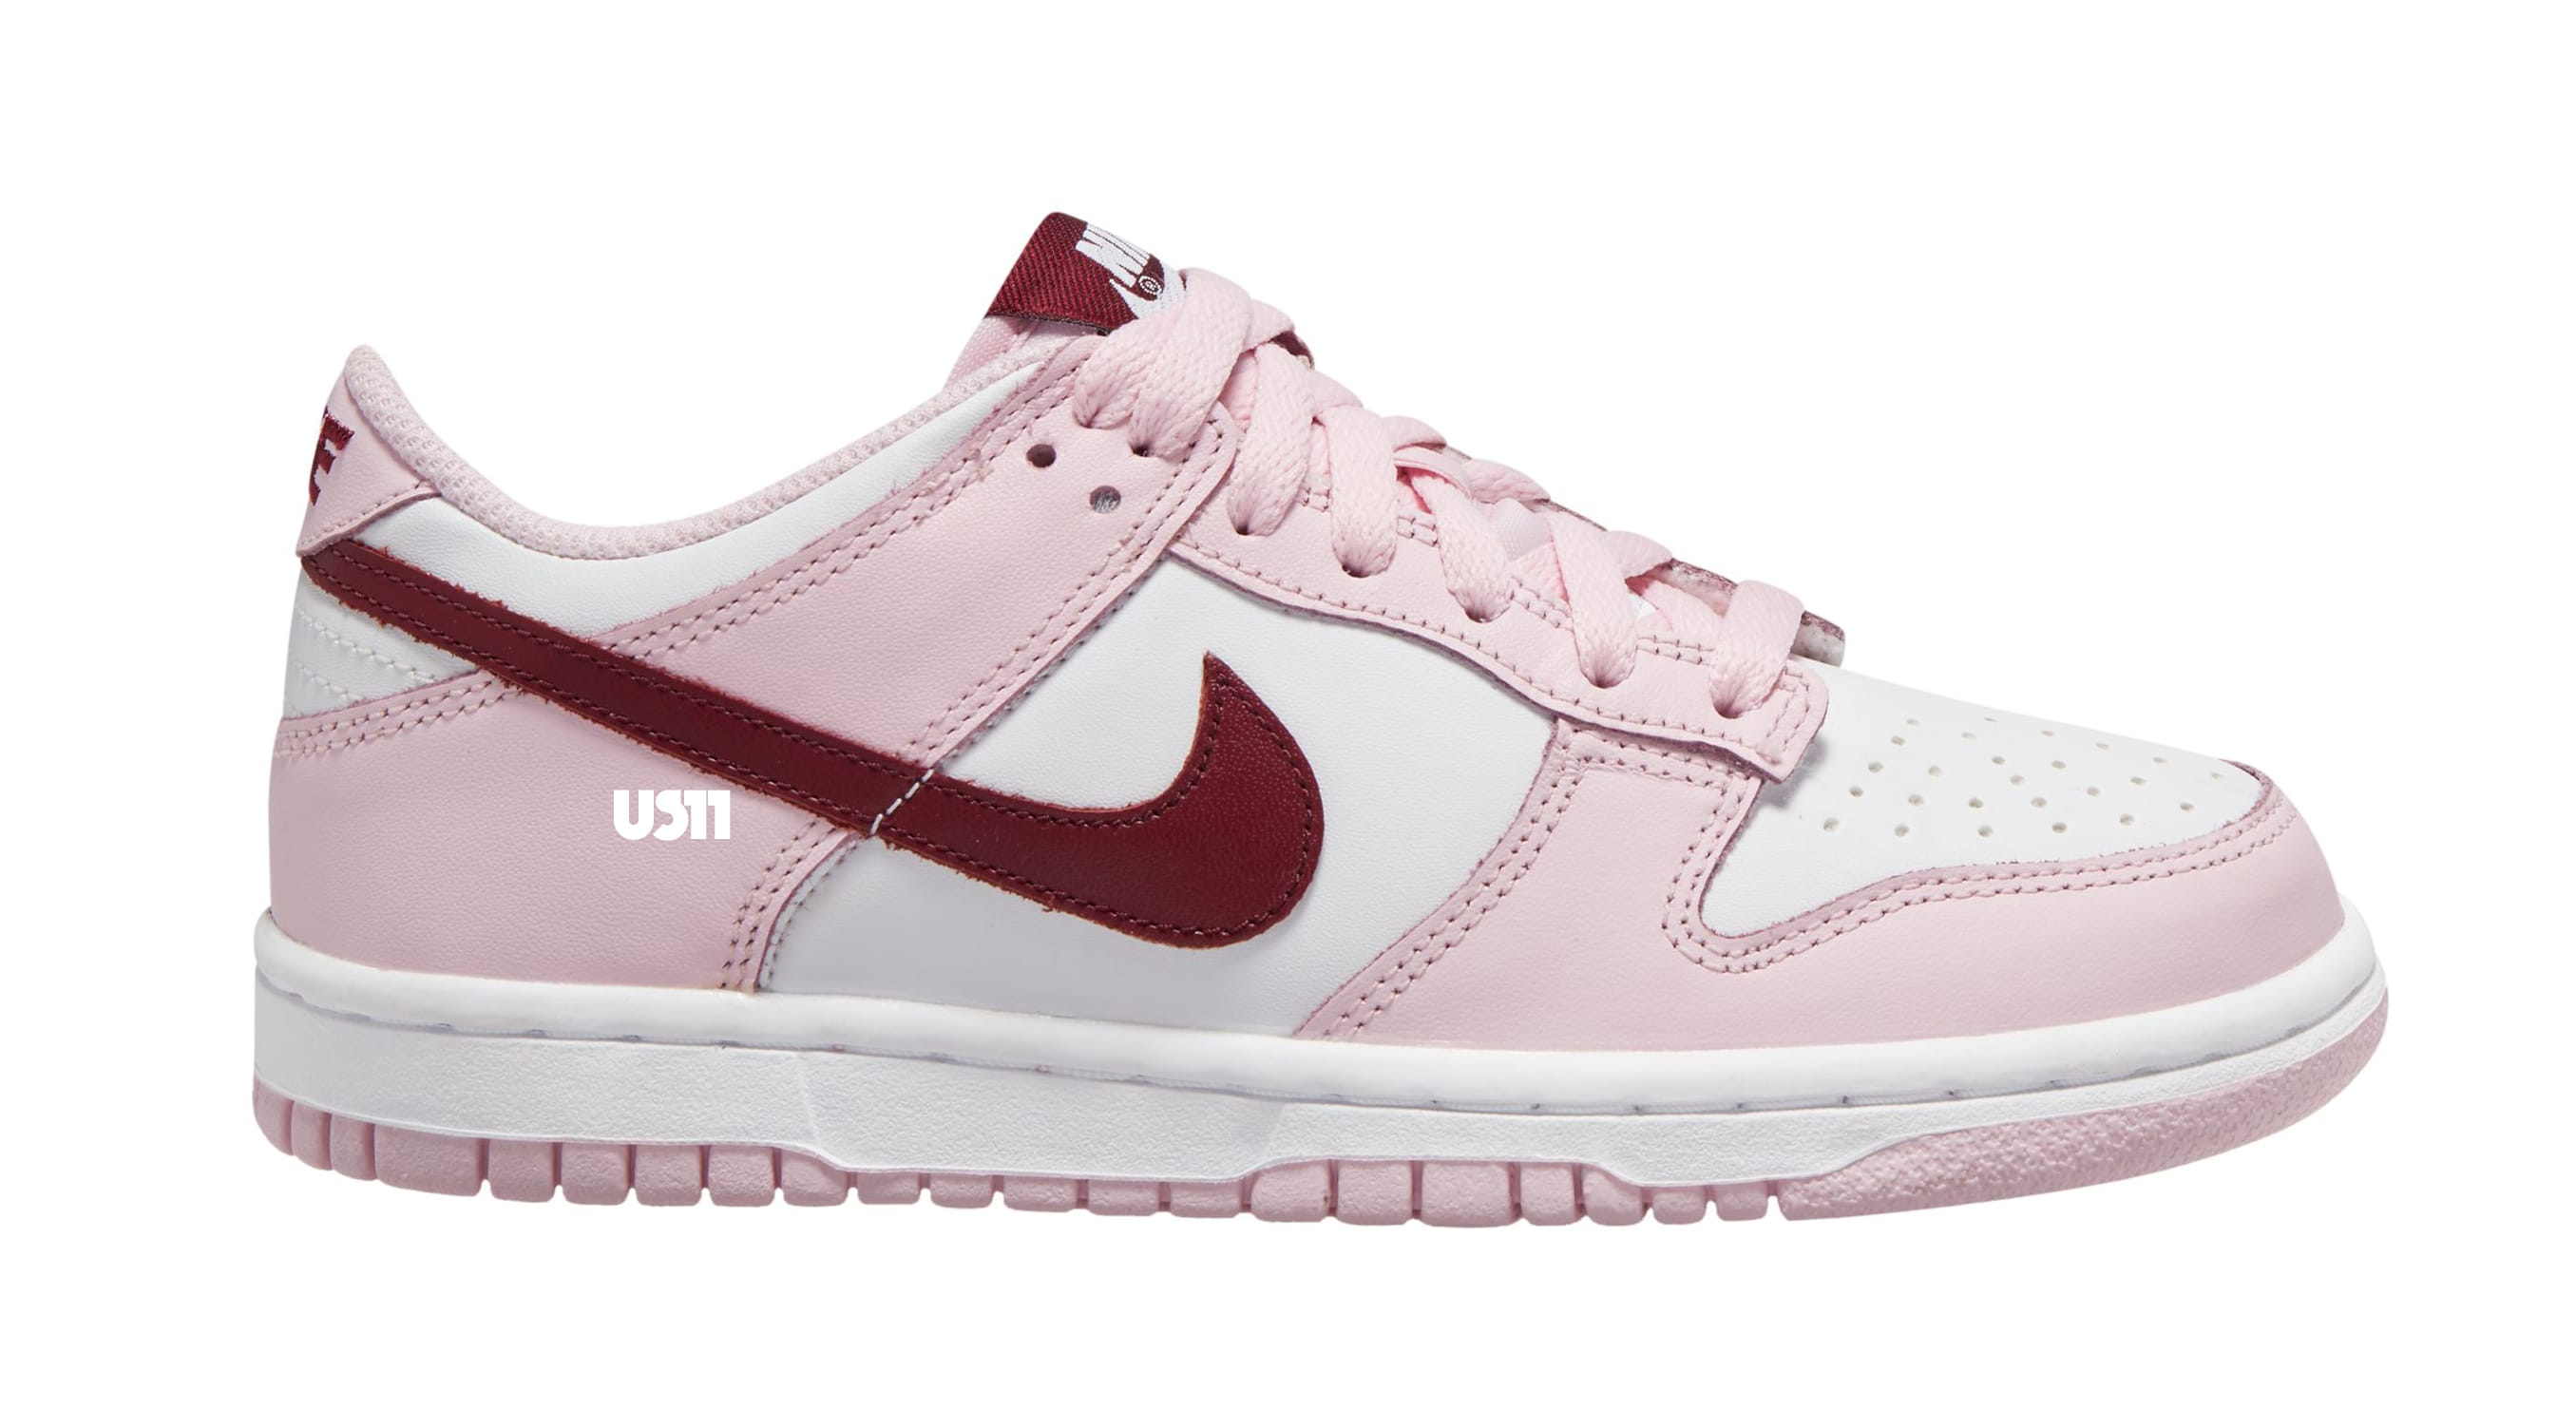 Nike Dunk Low GS White/Pink/Red Lateral